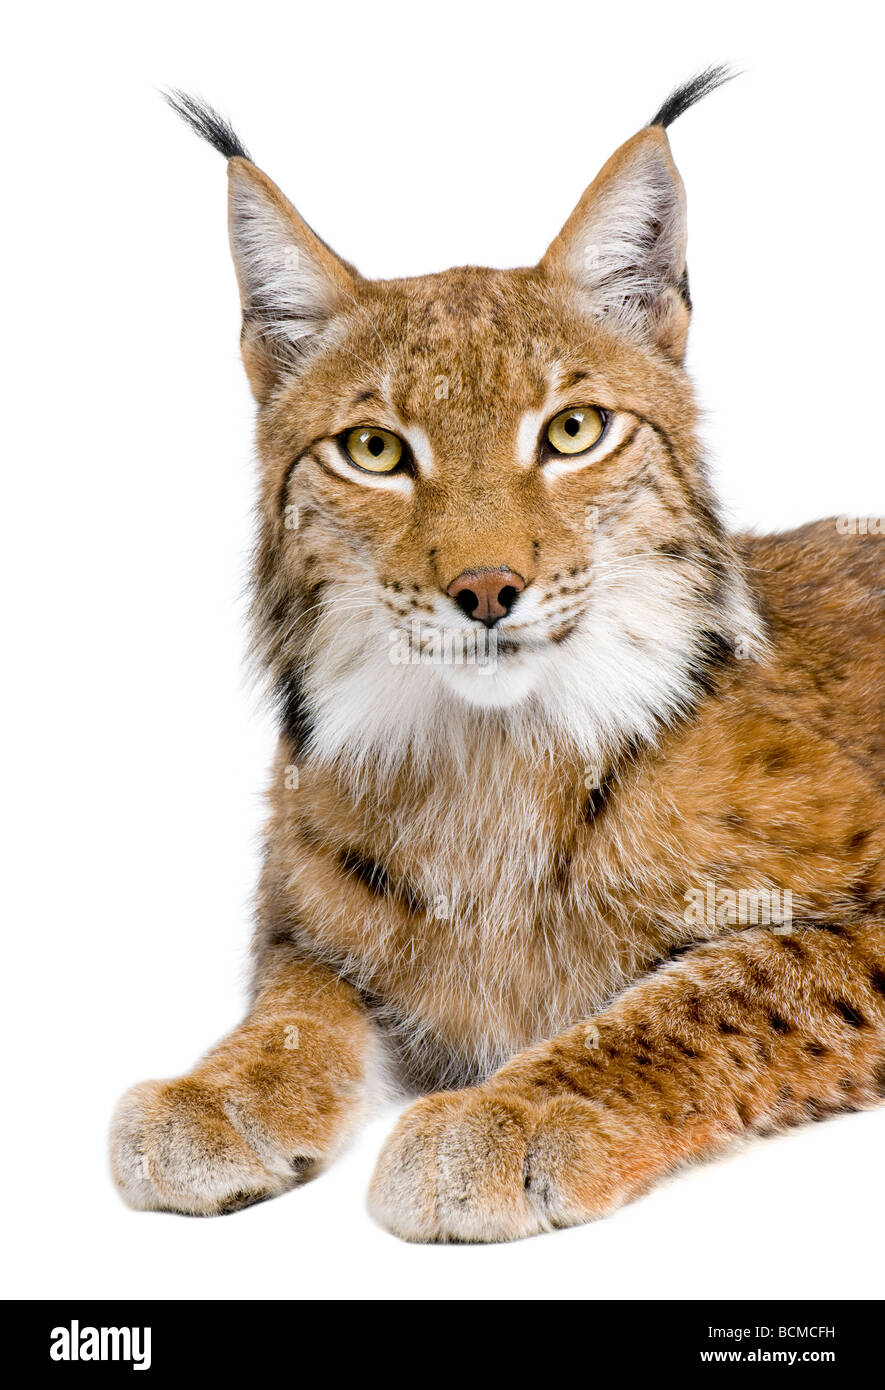 Eurasian Lynx, Lynx lynx, 5 years old, in front of a white background, studio shot - Stock Image